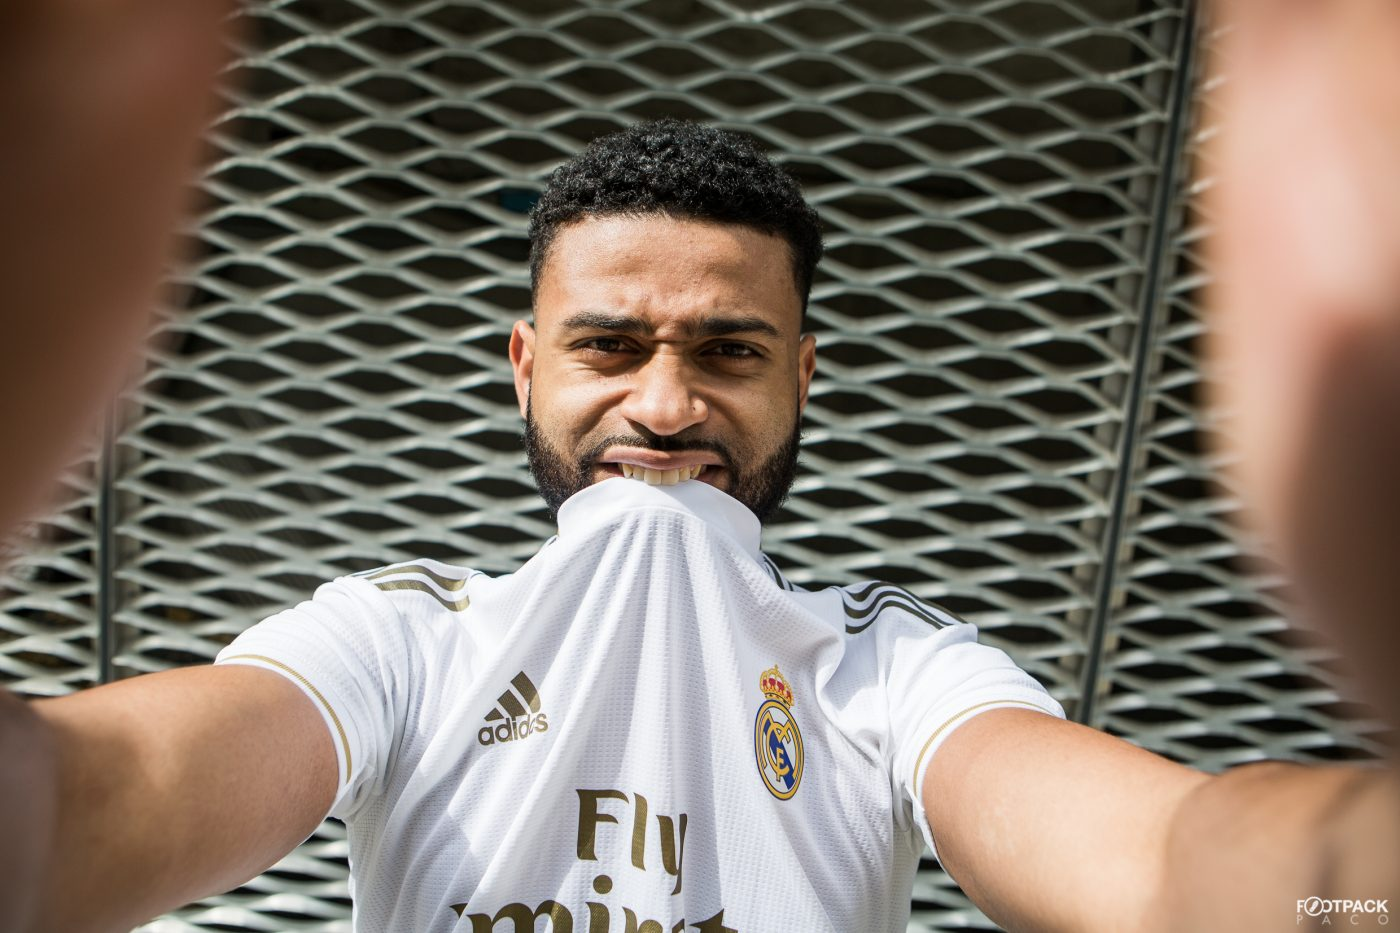 maillot-domicile-real-madrid-2019-2020-adidas-11